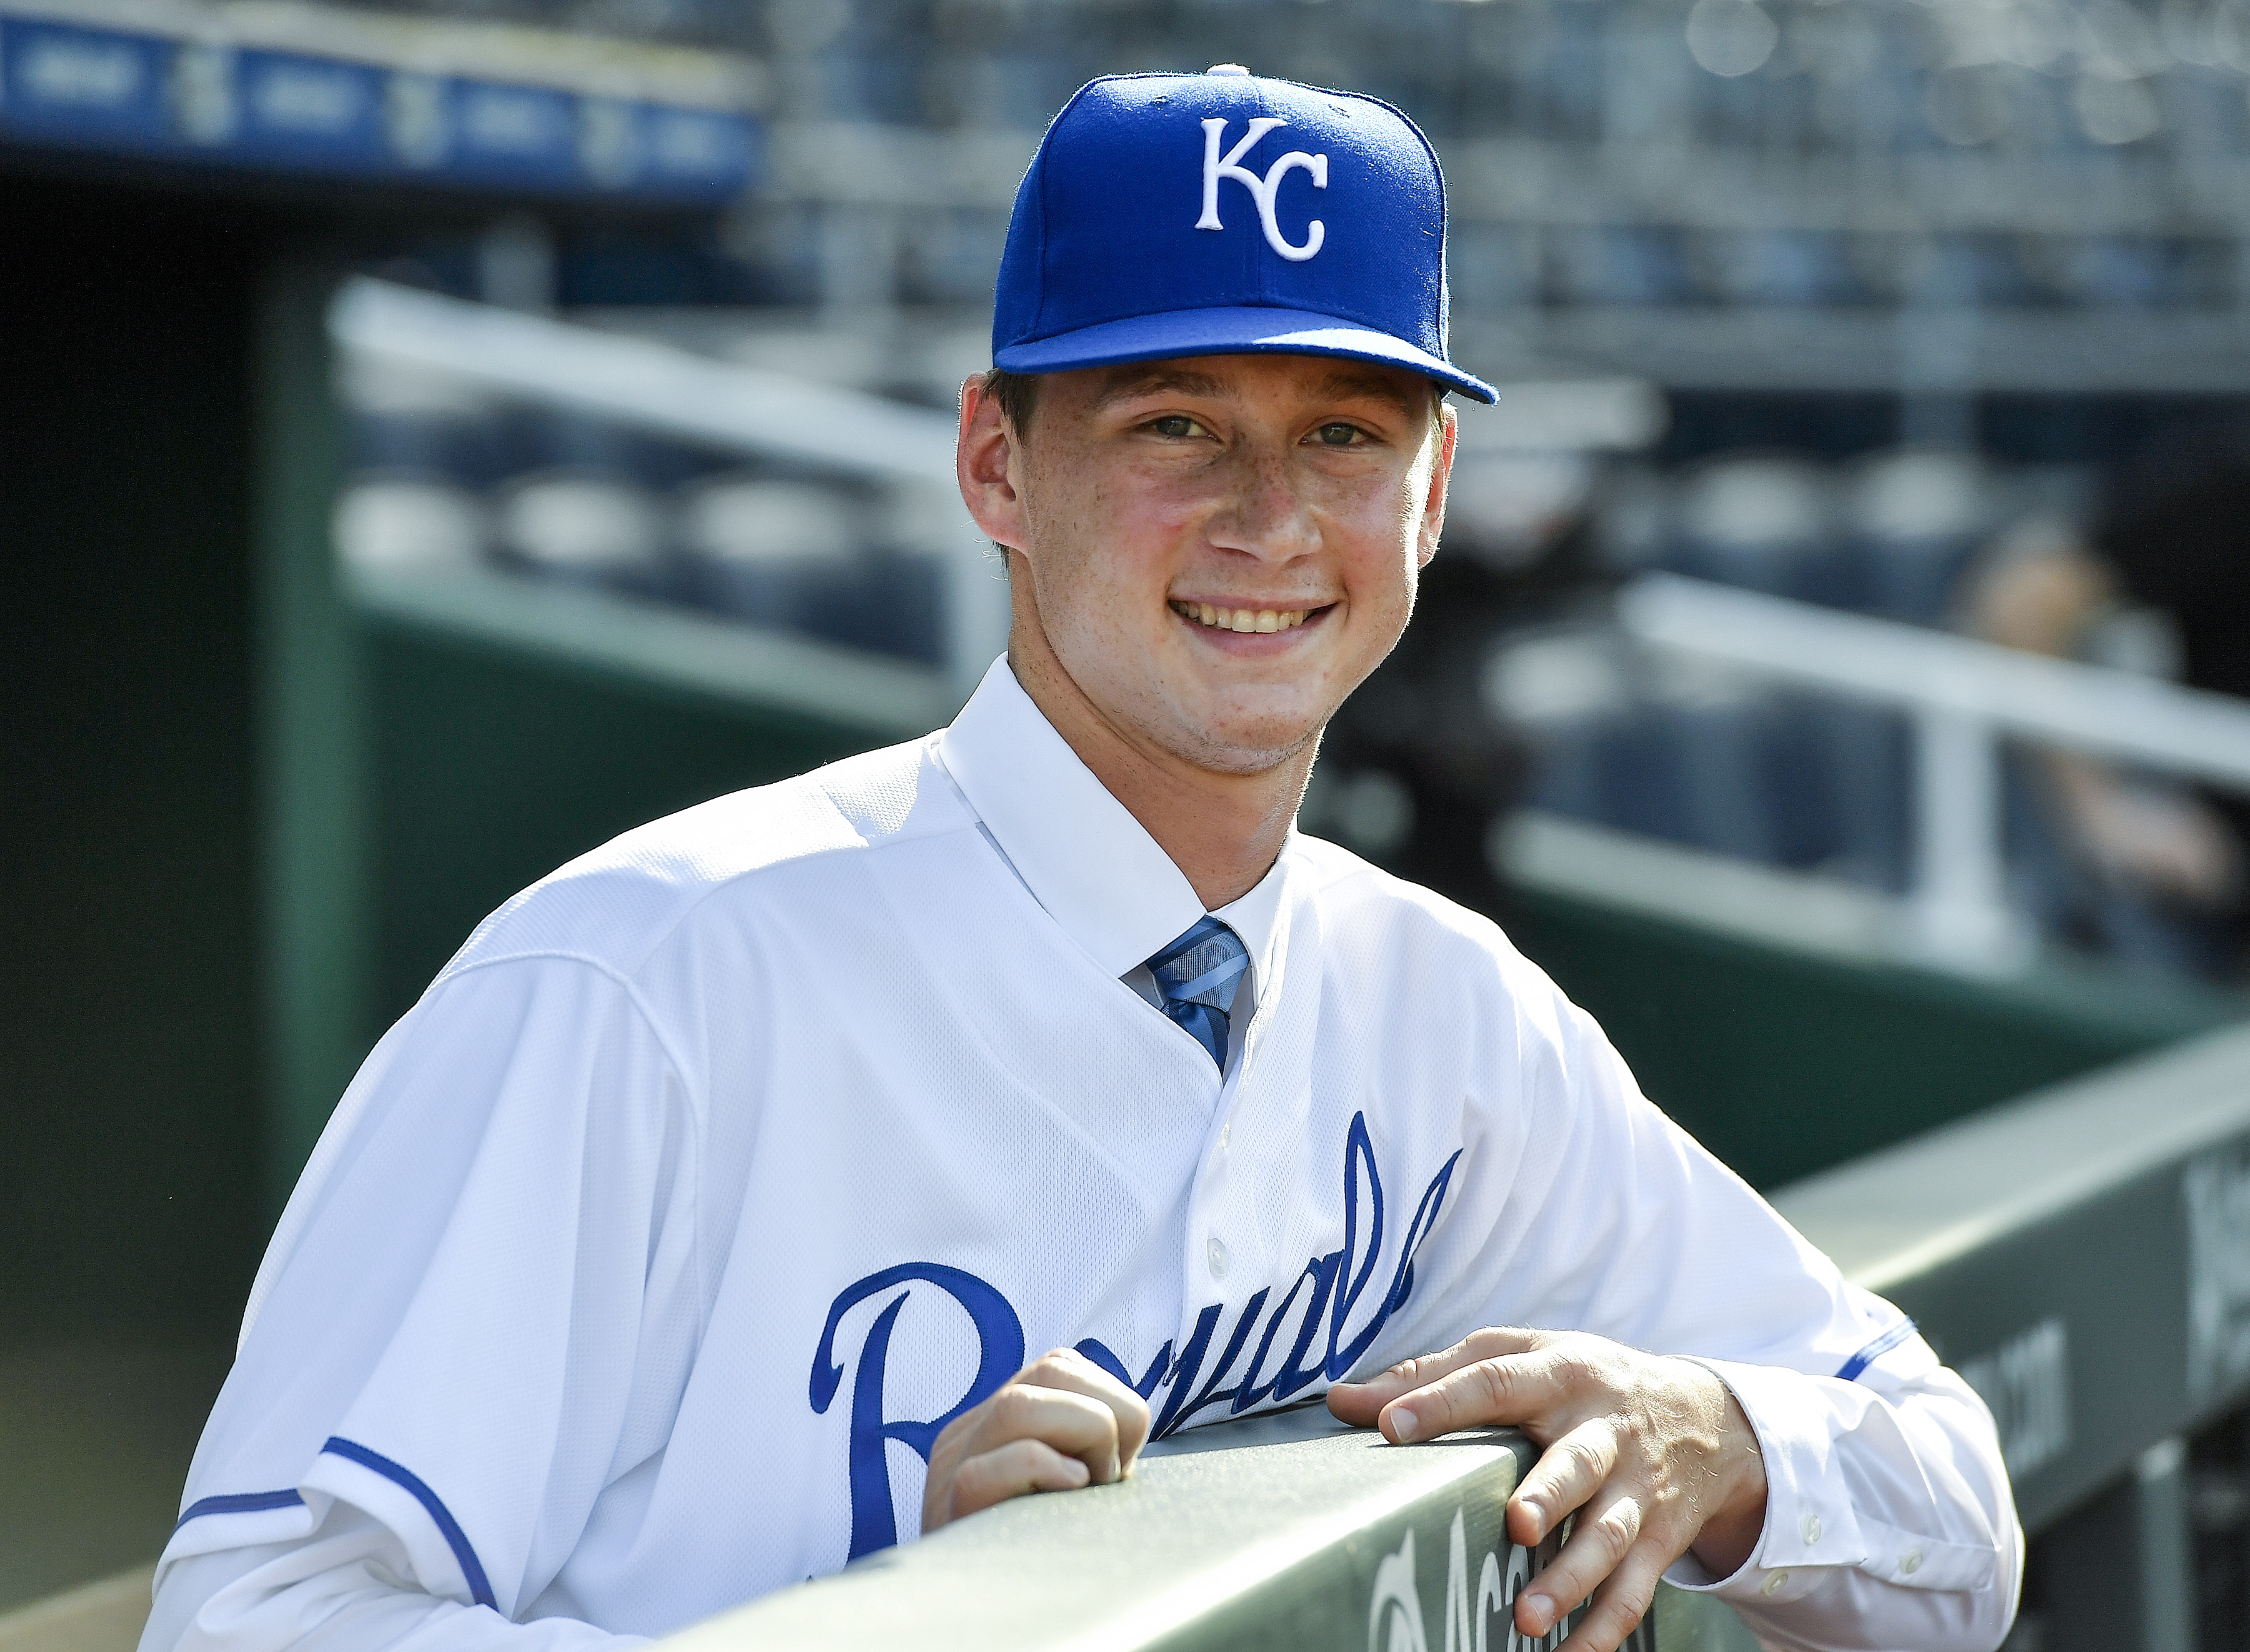 Right-handed pitcher Brady Singer, the Kansas City Royals' top pick of the 2018 draft, after a news conference announcing his signing before a game on Tuesday, July 3, 2018, at Kauffman Stadium in Kansas City, Mo.